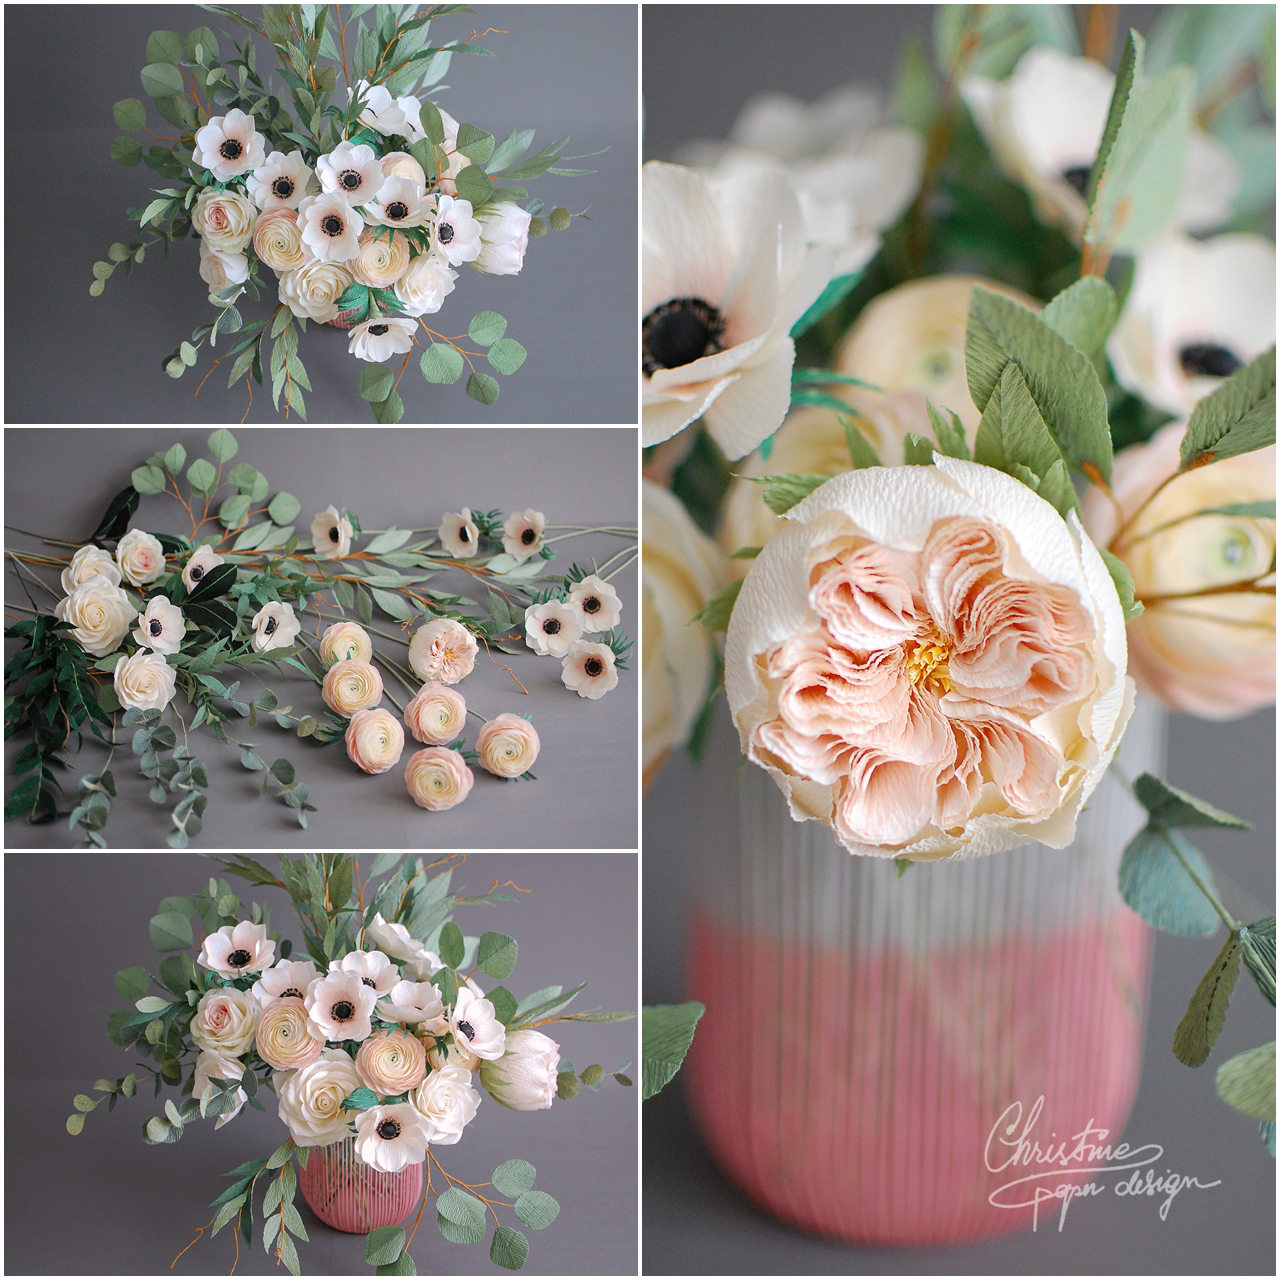 paper flowers centerpiece - Christinepaperdesign